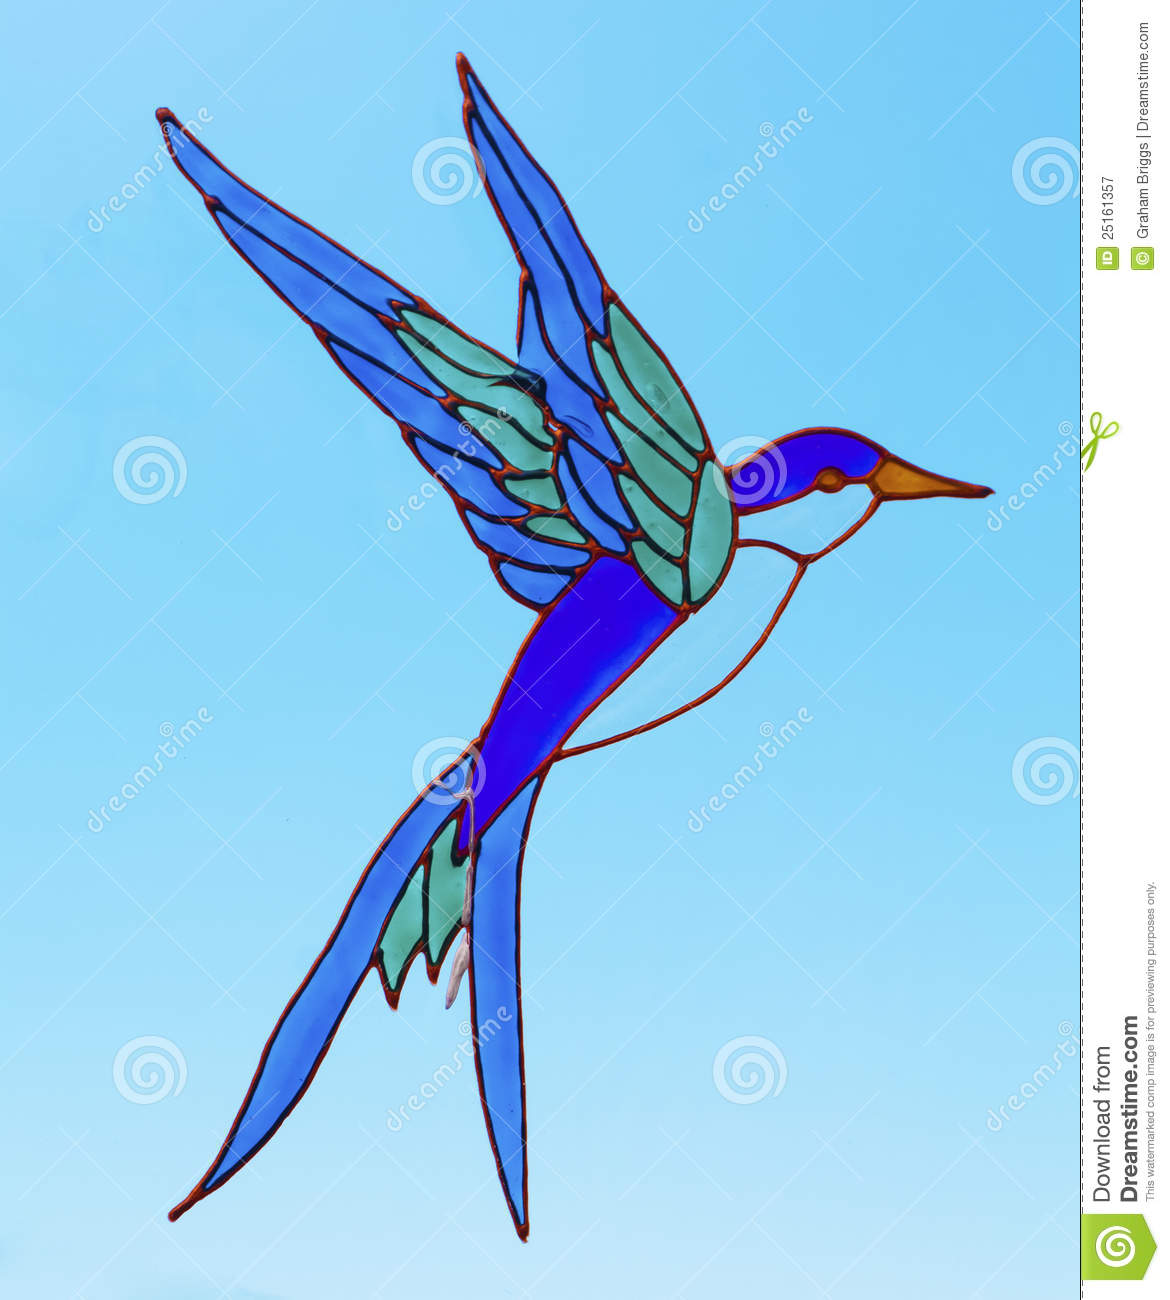 Stained Glass Bird Stock Image Image Of Bird Colored